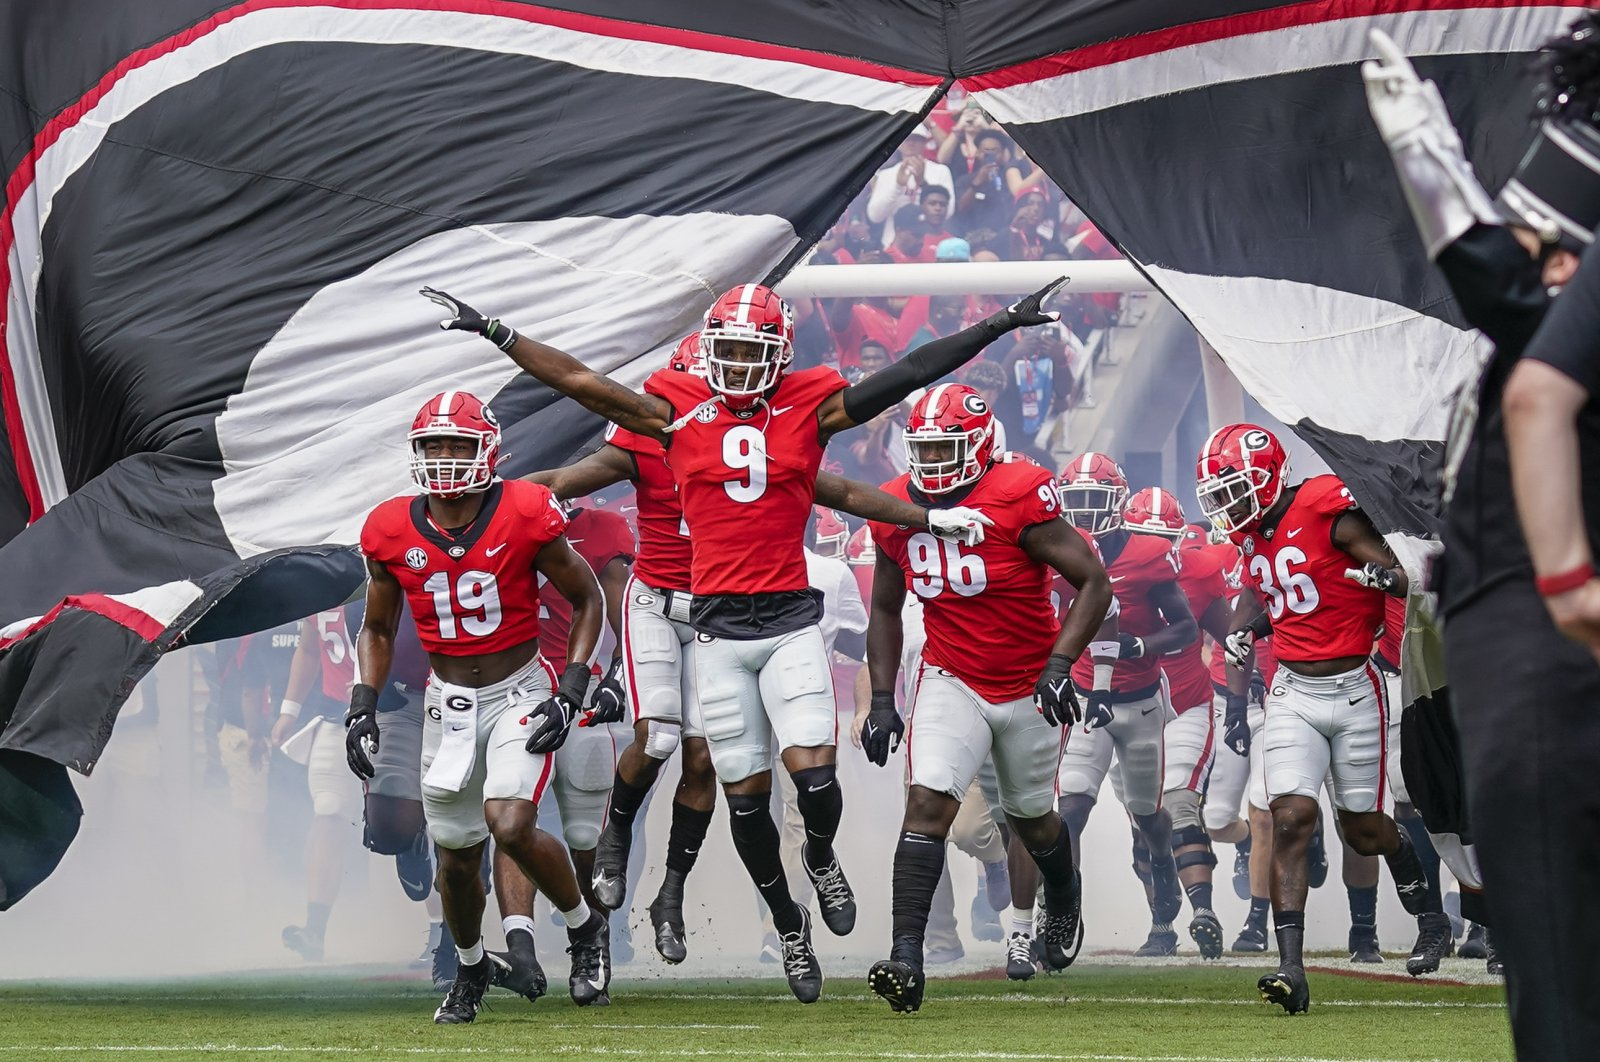 The Georgia Bulldogs led by defensive back Ameer Speed (9) run out to the field to face the Arkansas Razorbacks at Sanford Stadium, Athens, Georgia, U.S., Oct. 2, 2021. (Dale Zanine-USA TODAY Sports via Reuters)